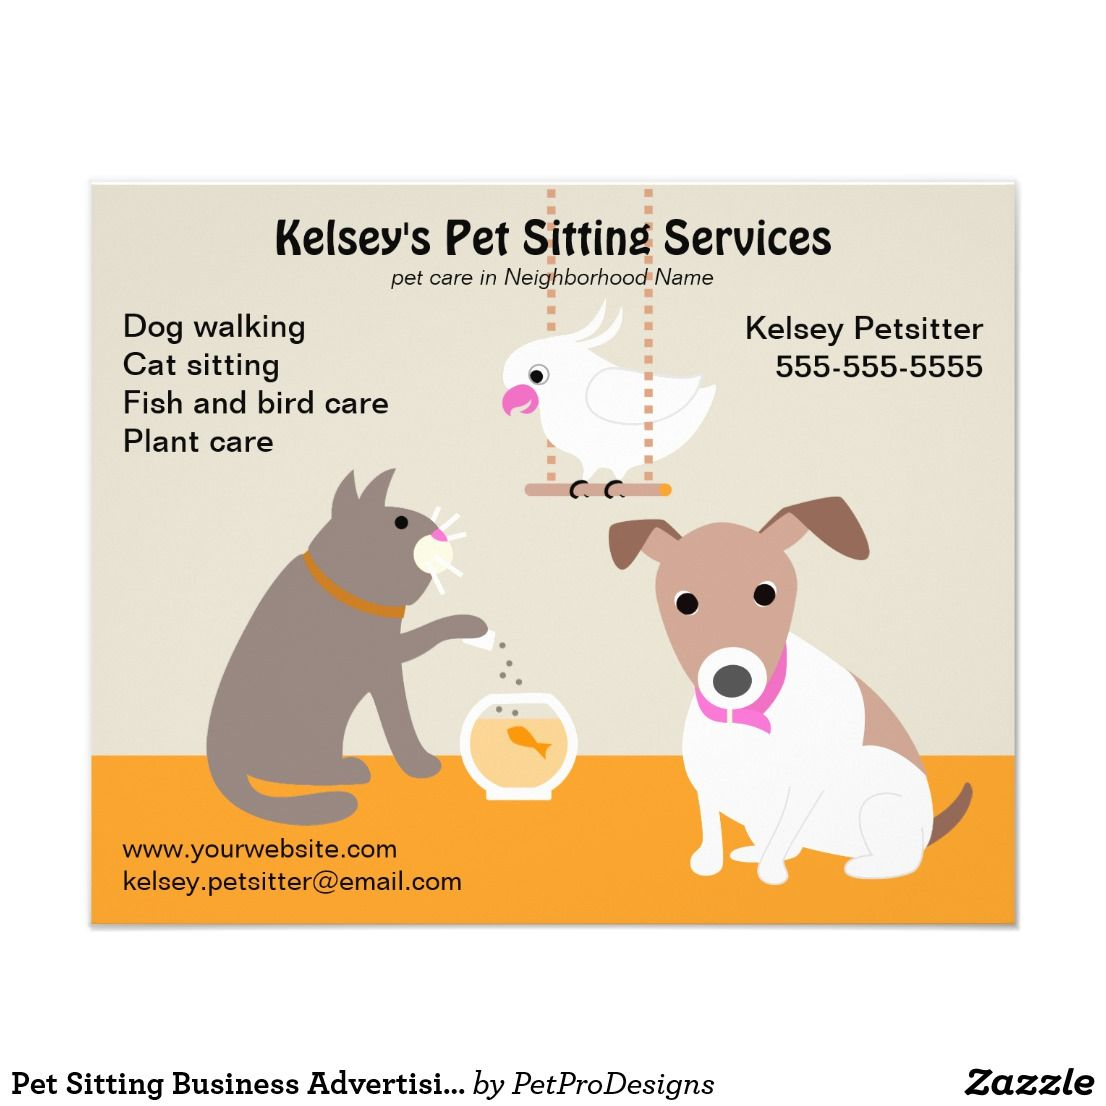 Pet Sitting Business Advertising Flyer Zazzle Com Pet Sitting